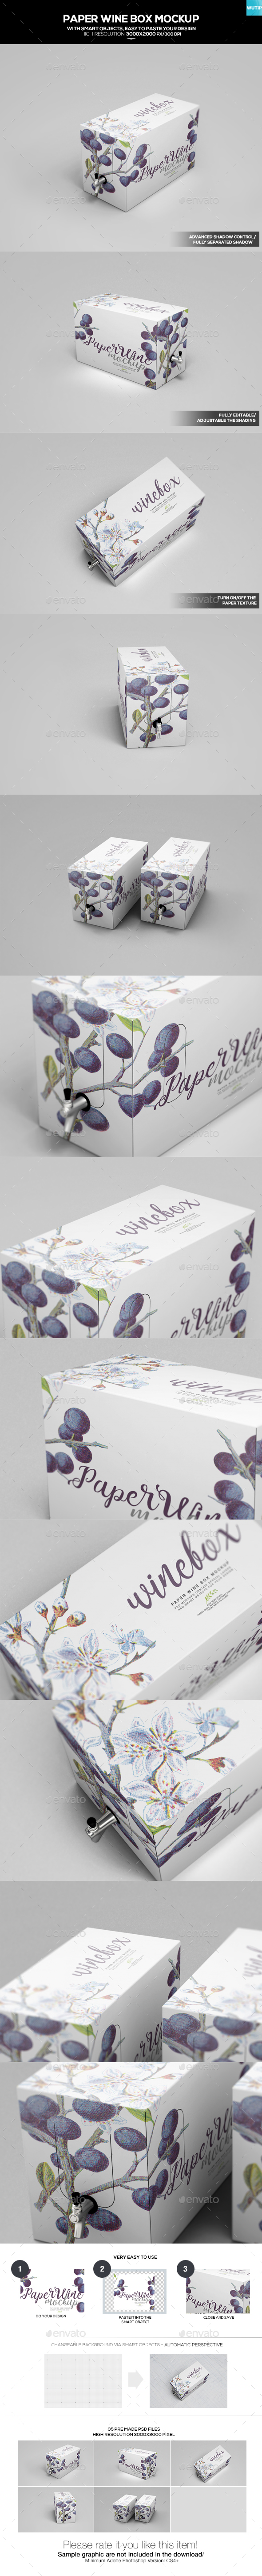 Paper Wine Box Mockup - Food and Drink Packaging